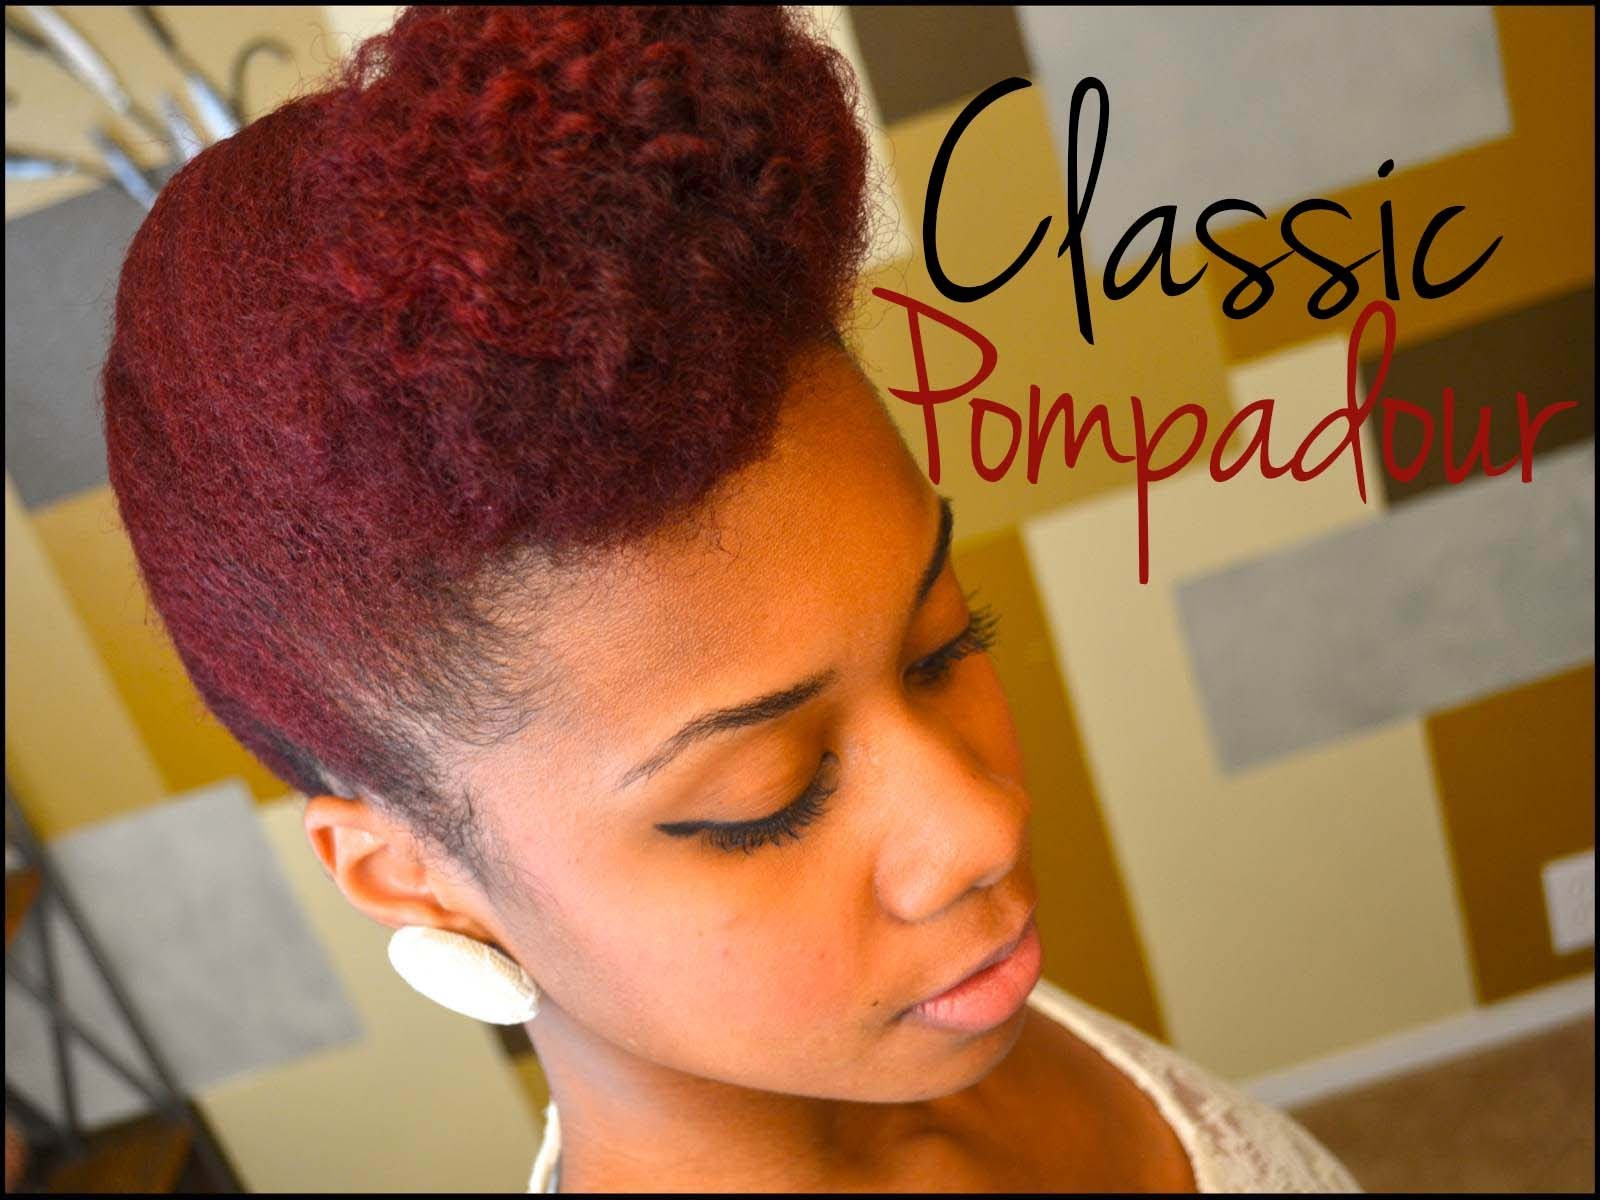 Updo Natural Hair Tutorial Classic Pompadour Everything